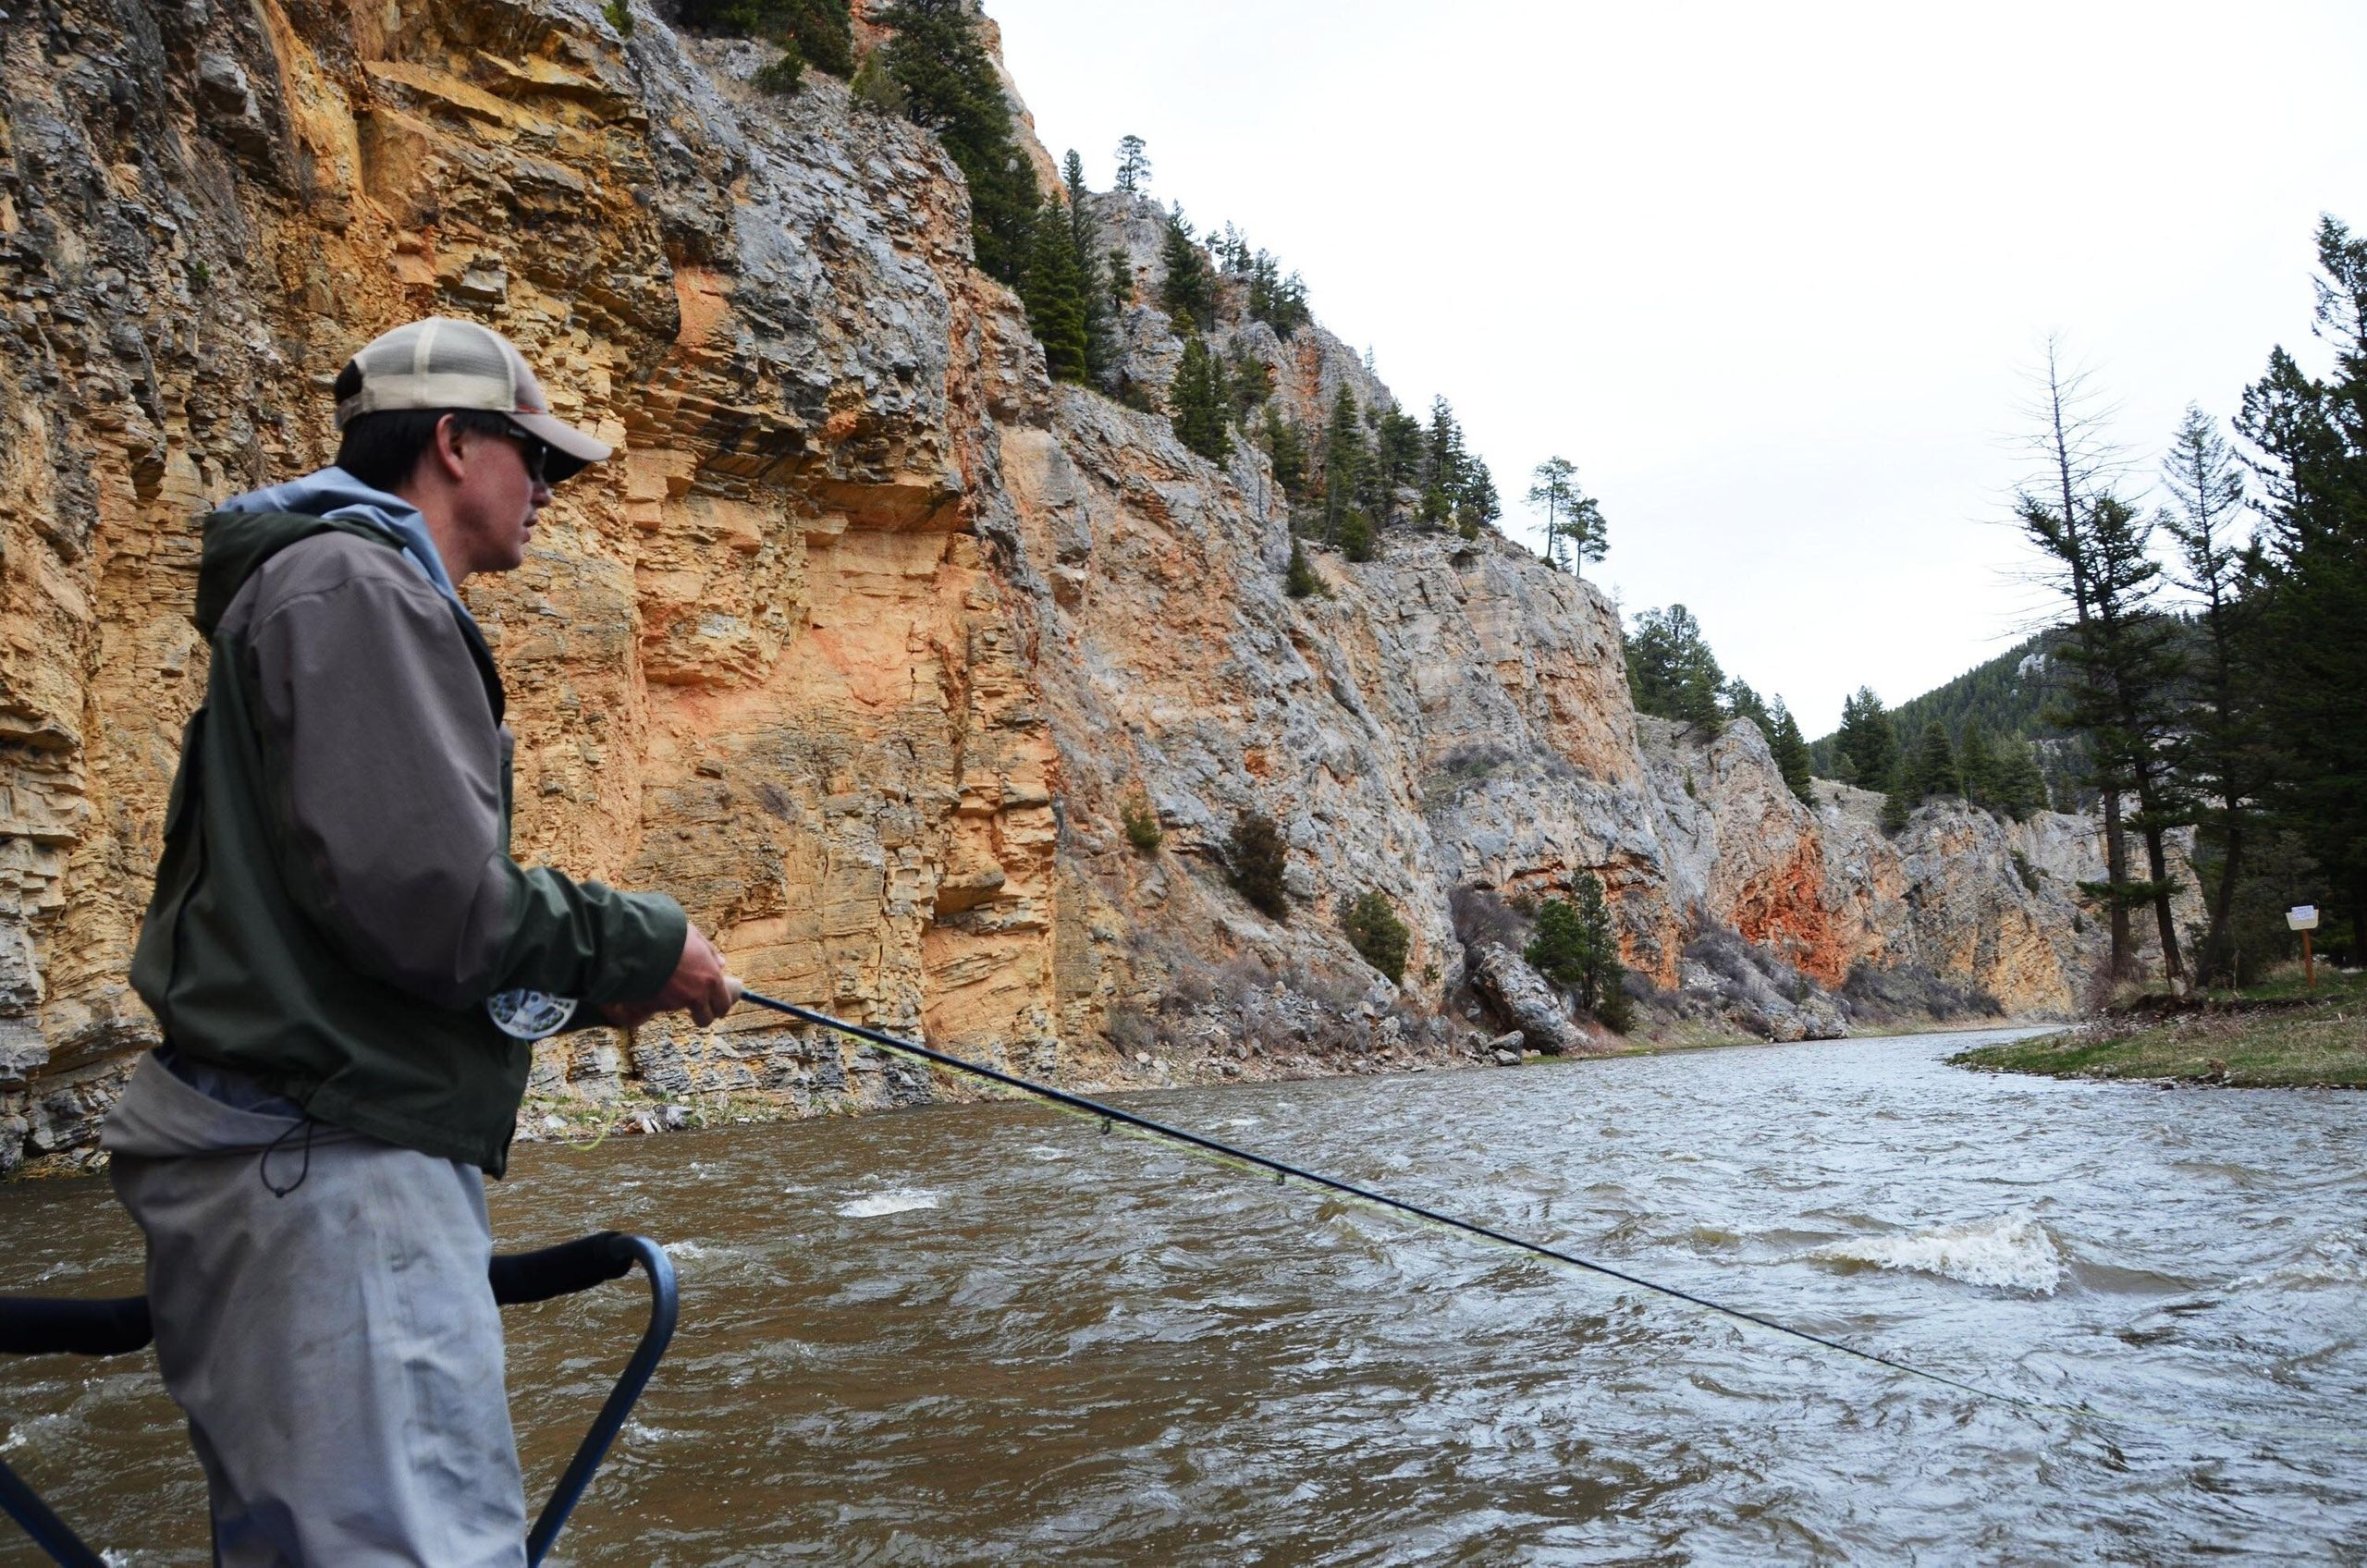 An angler fishes for trout along the scenic Smith River.